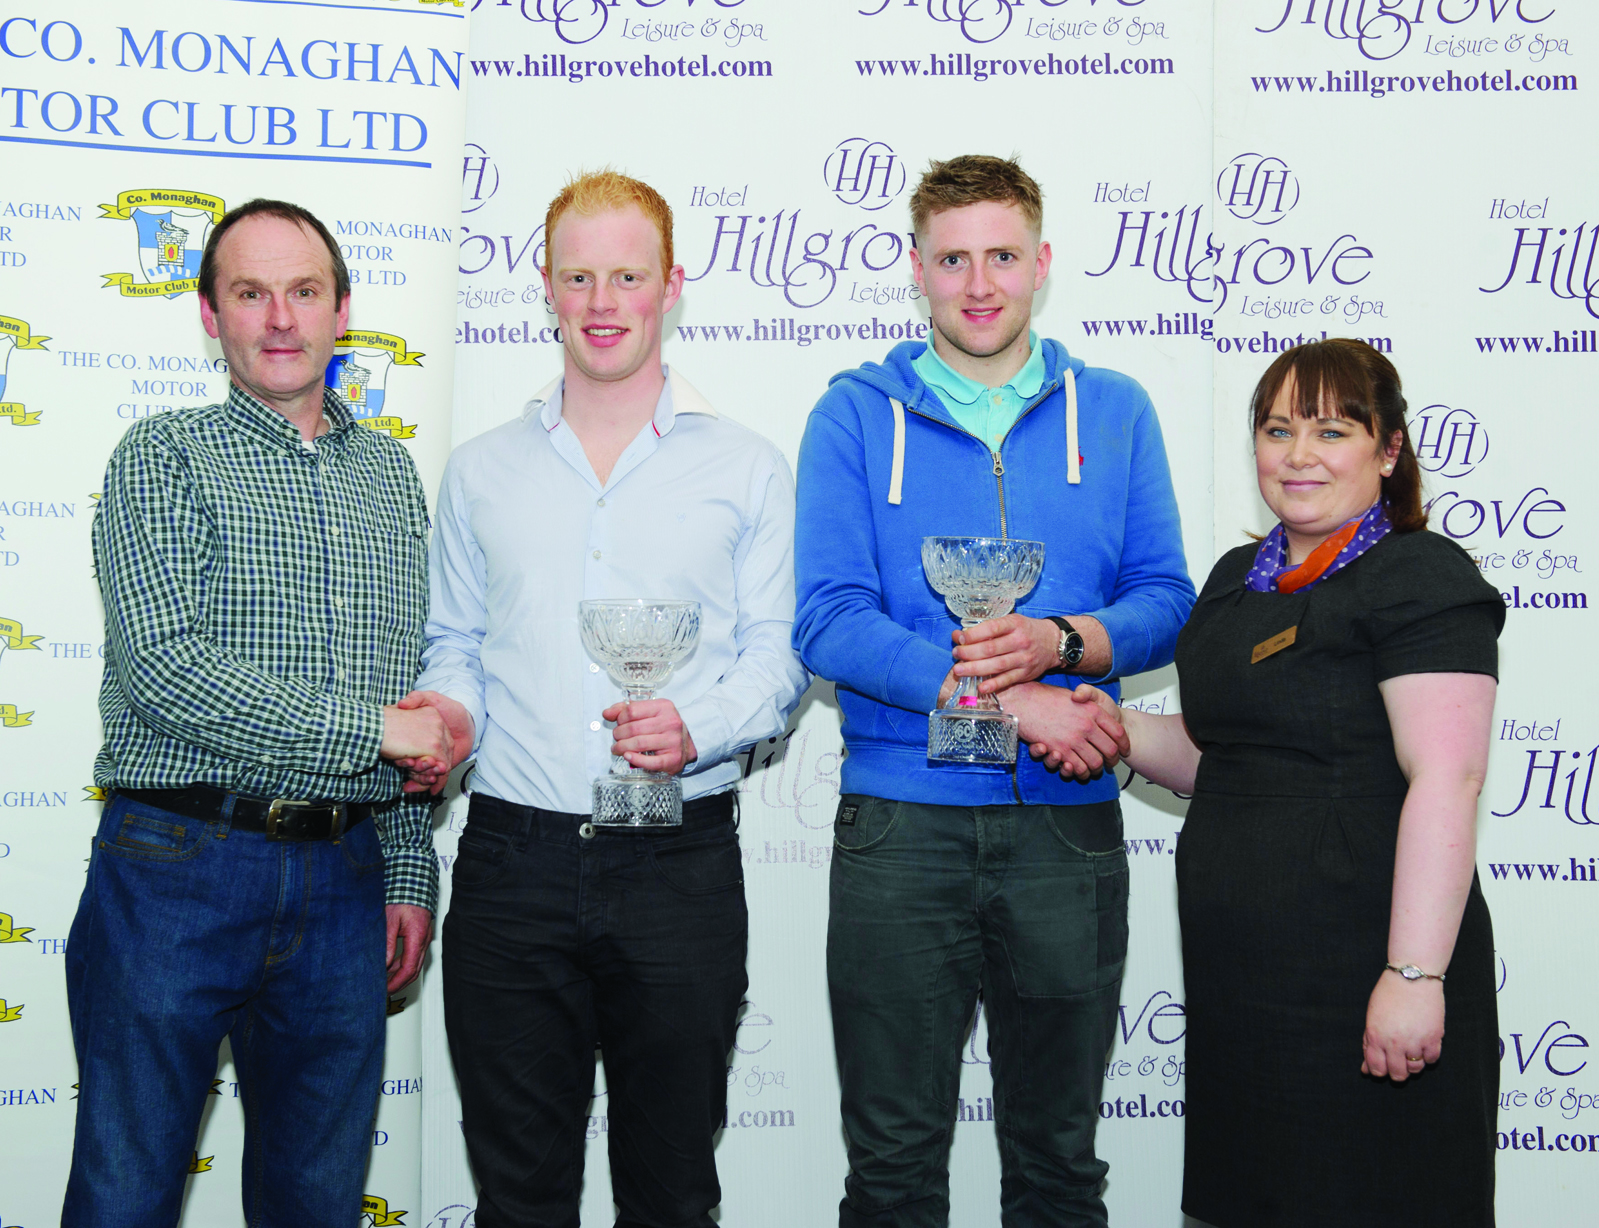 At the presentation of the awards for Overall Runner-up in the The Hillgrove Hotel Monaghan Stages Rally 2016 were (L-R) Brendan Flynn, Clerk of the Course, Sam Moffett, James Fulton and Linda Scott, The Hillgrove Hotel.